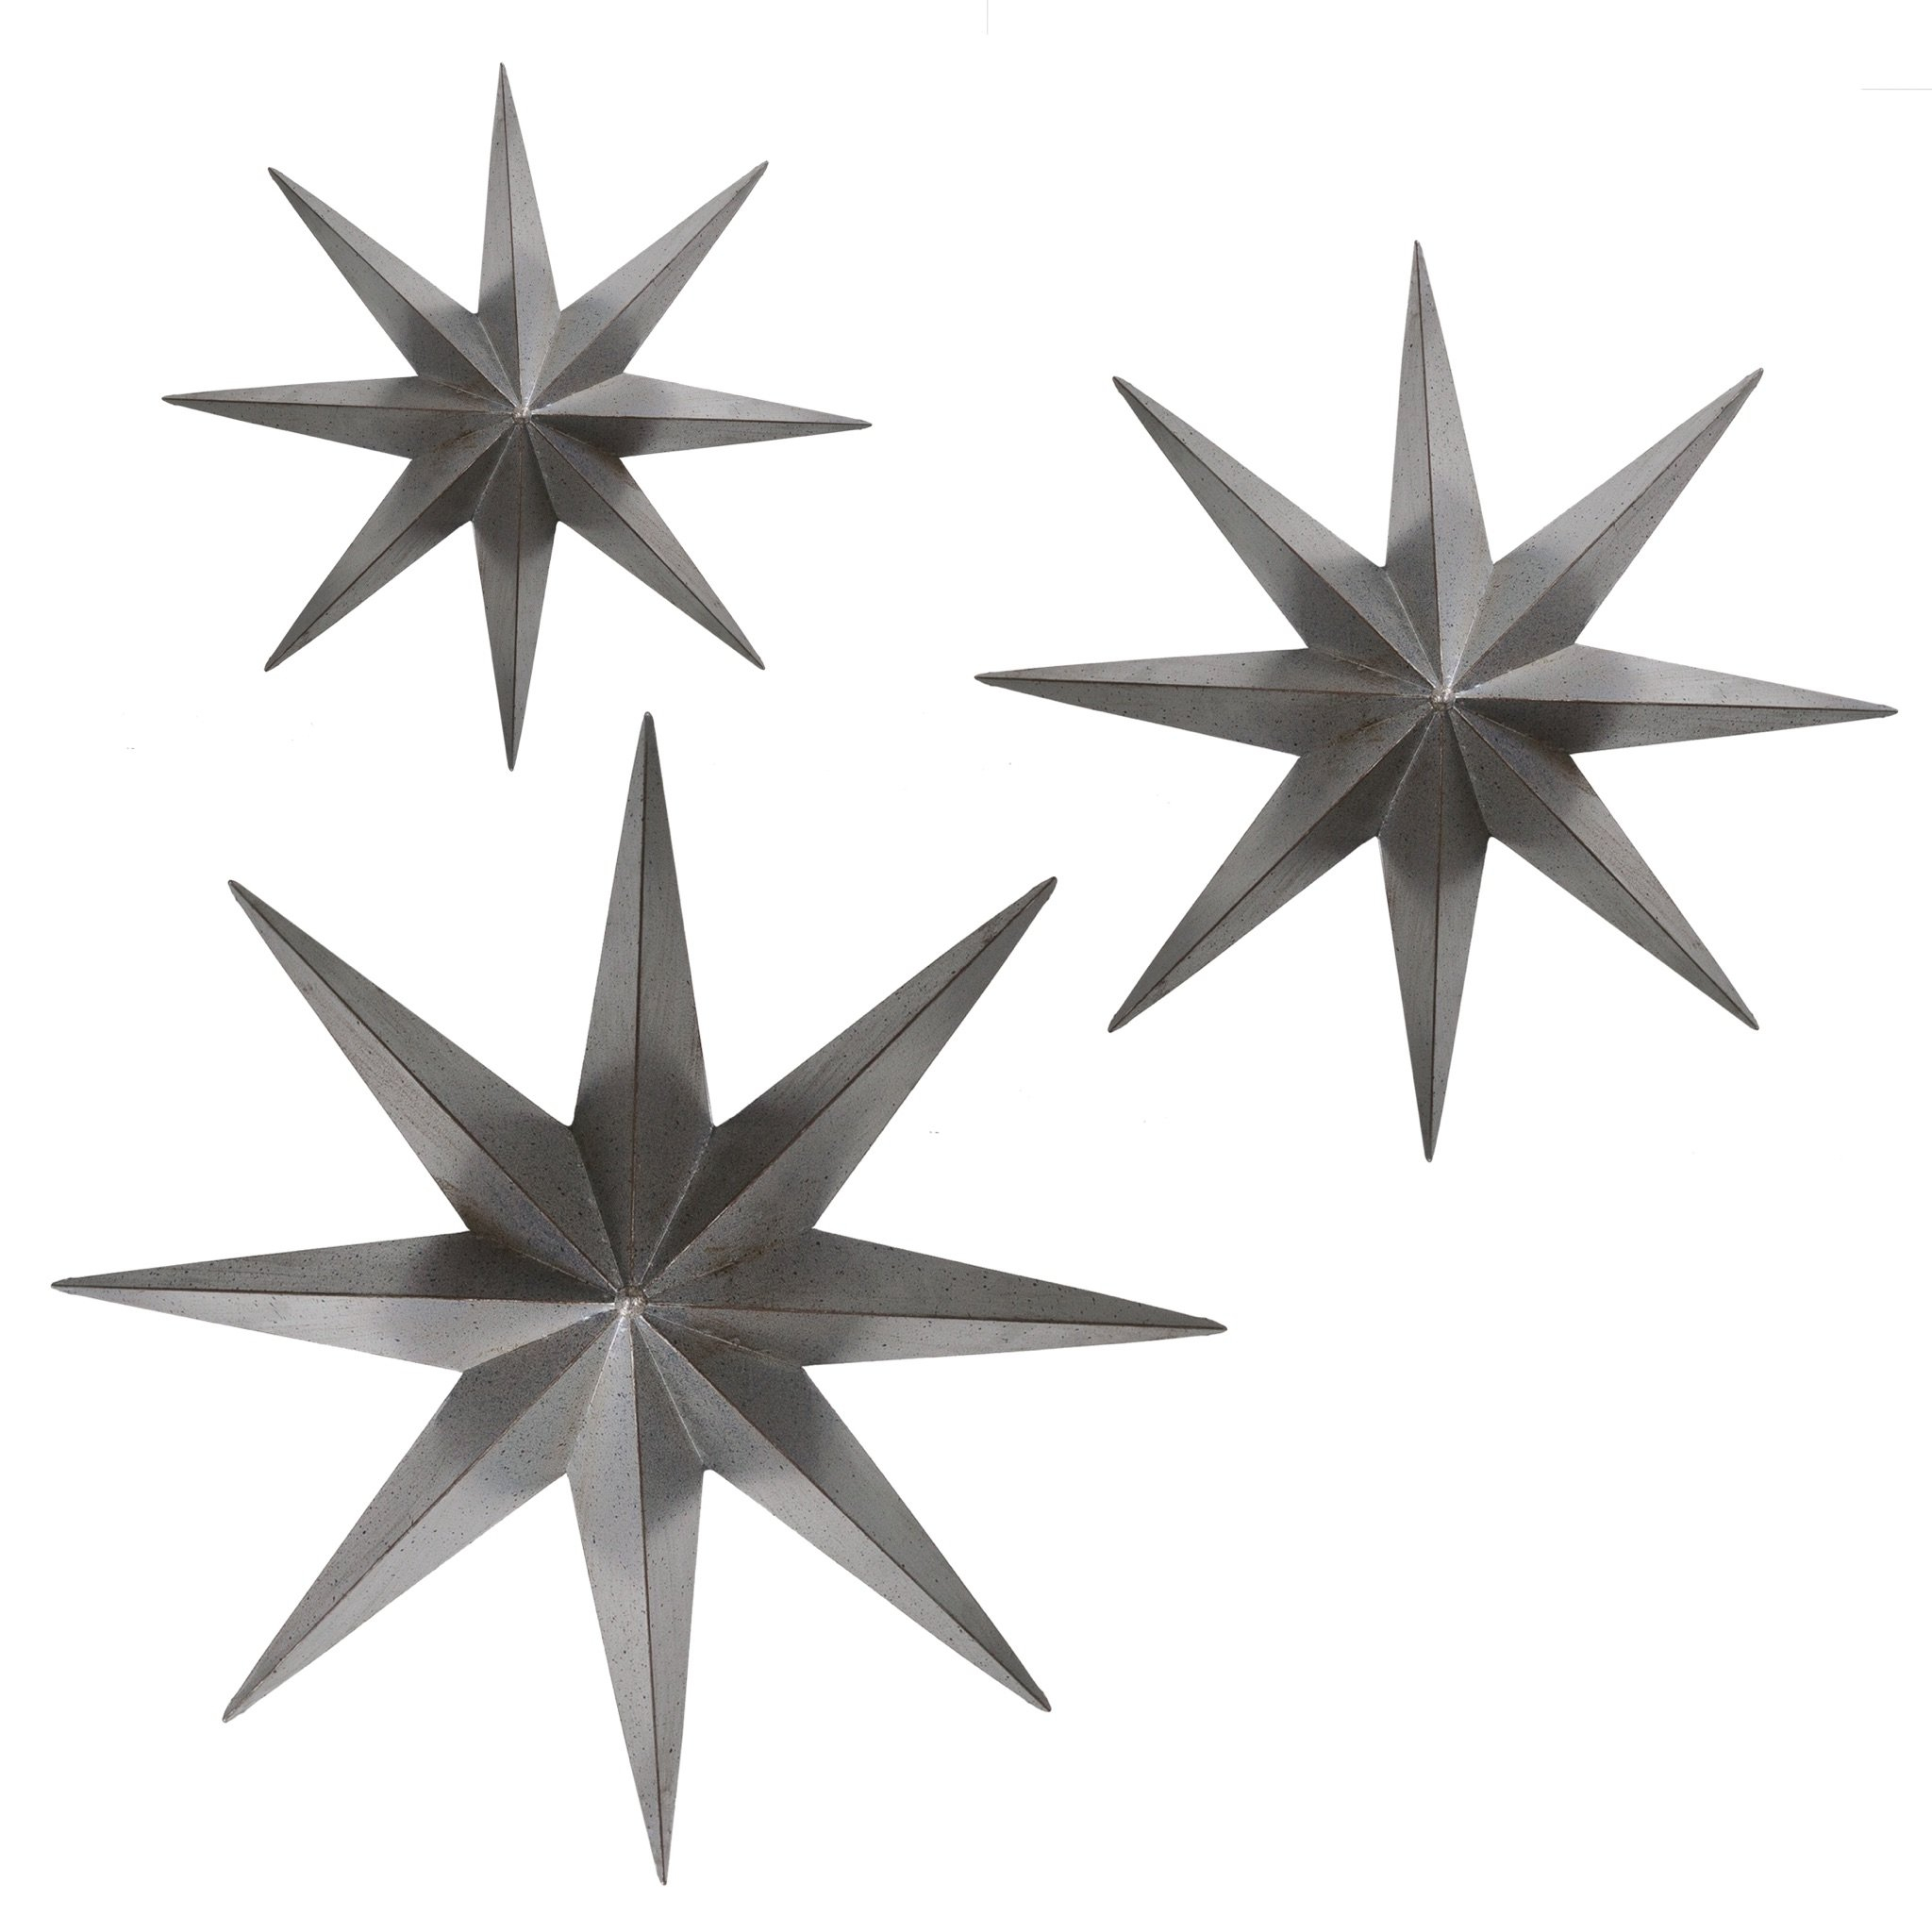 3 Piece Metal Stars Wall Décor Set Throughout 3 Piece Star Wall Decor Sets (View 9 of 30)